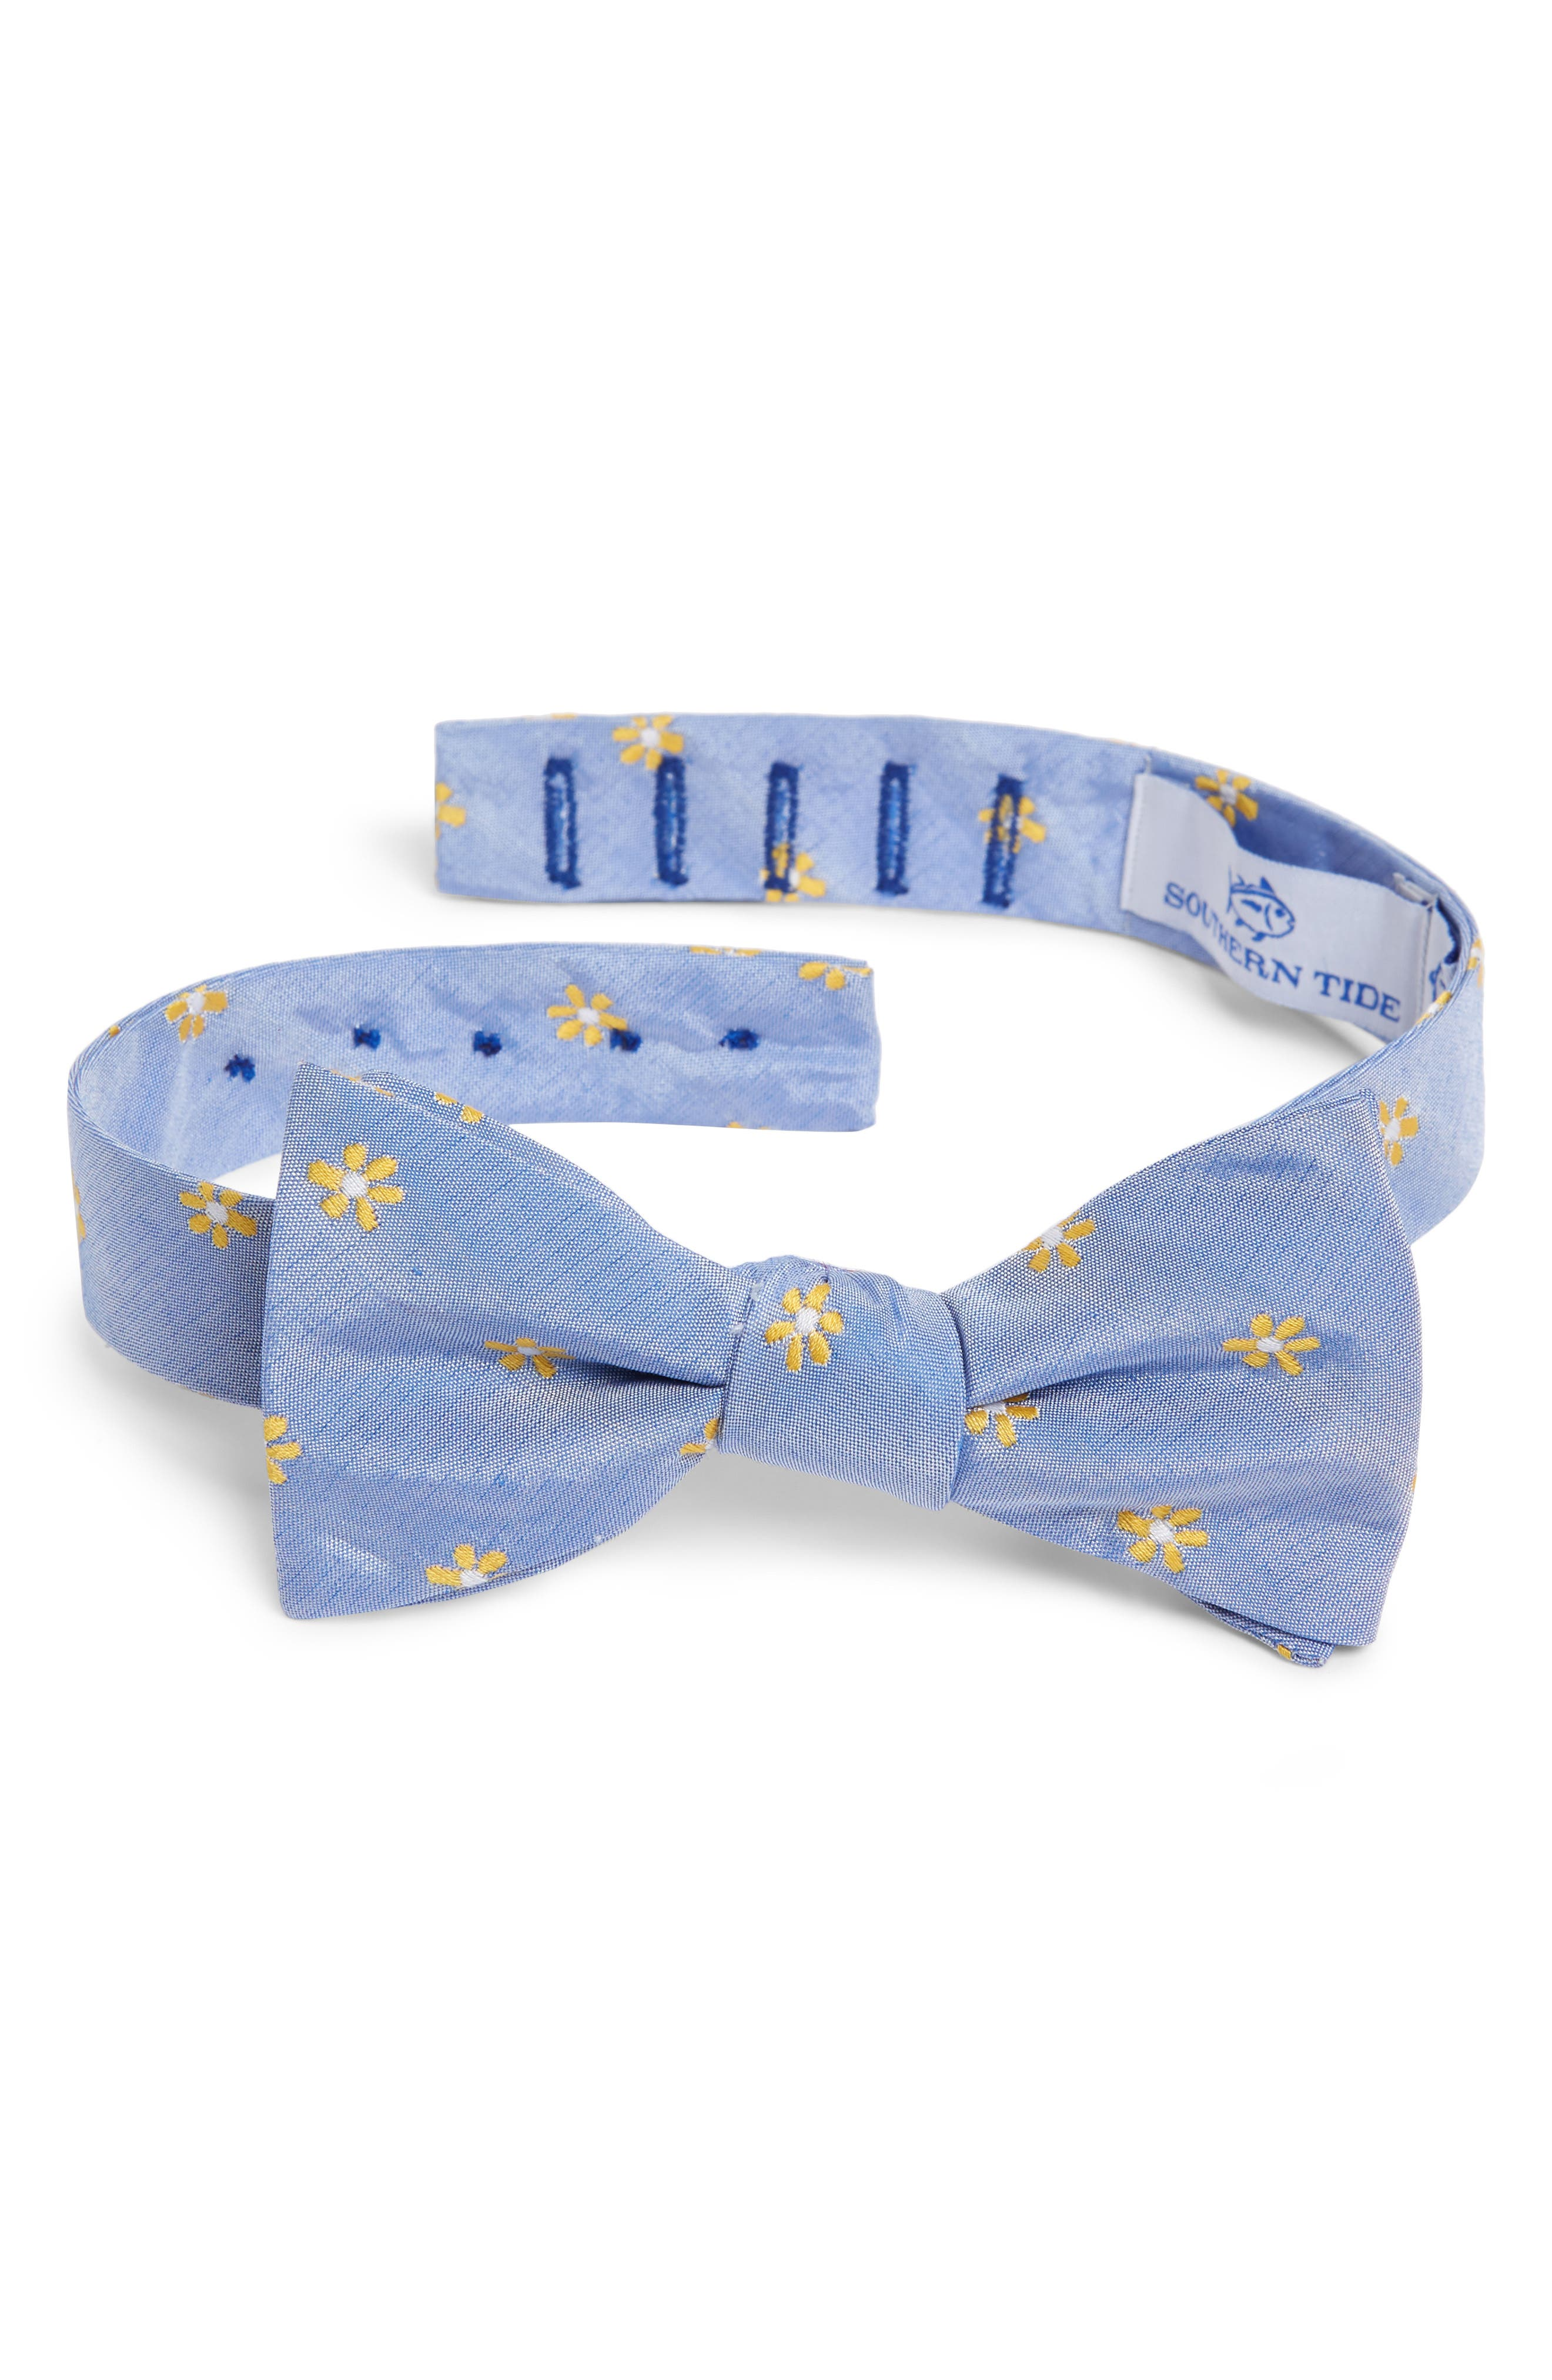 Cumberland Floral Cotton & Silk Bow Tie,                             Main thumbnail 1, color,                             YELLOW/ BLUE